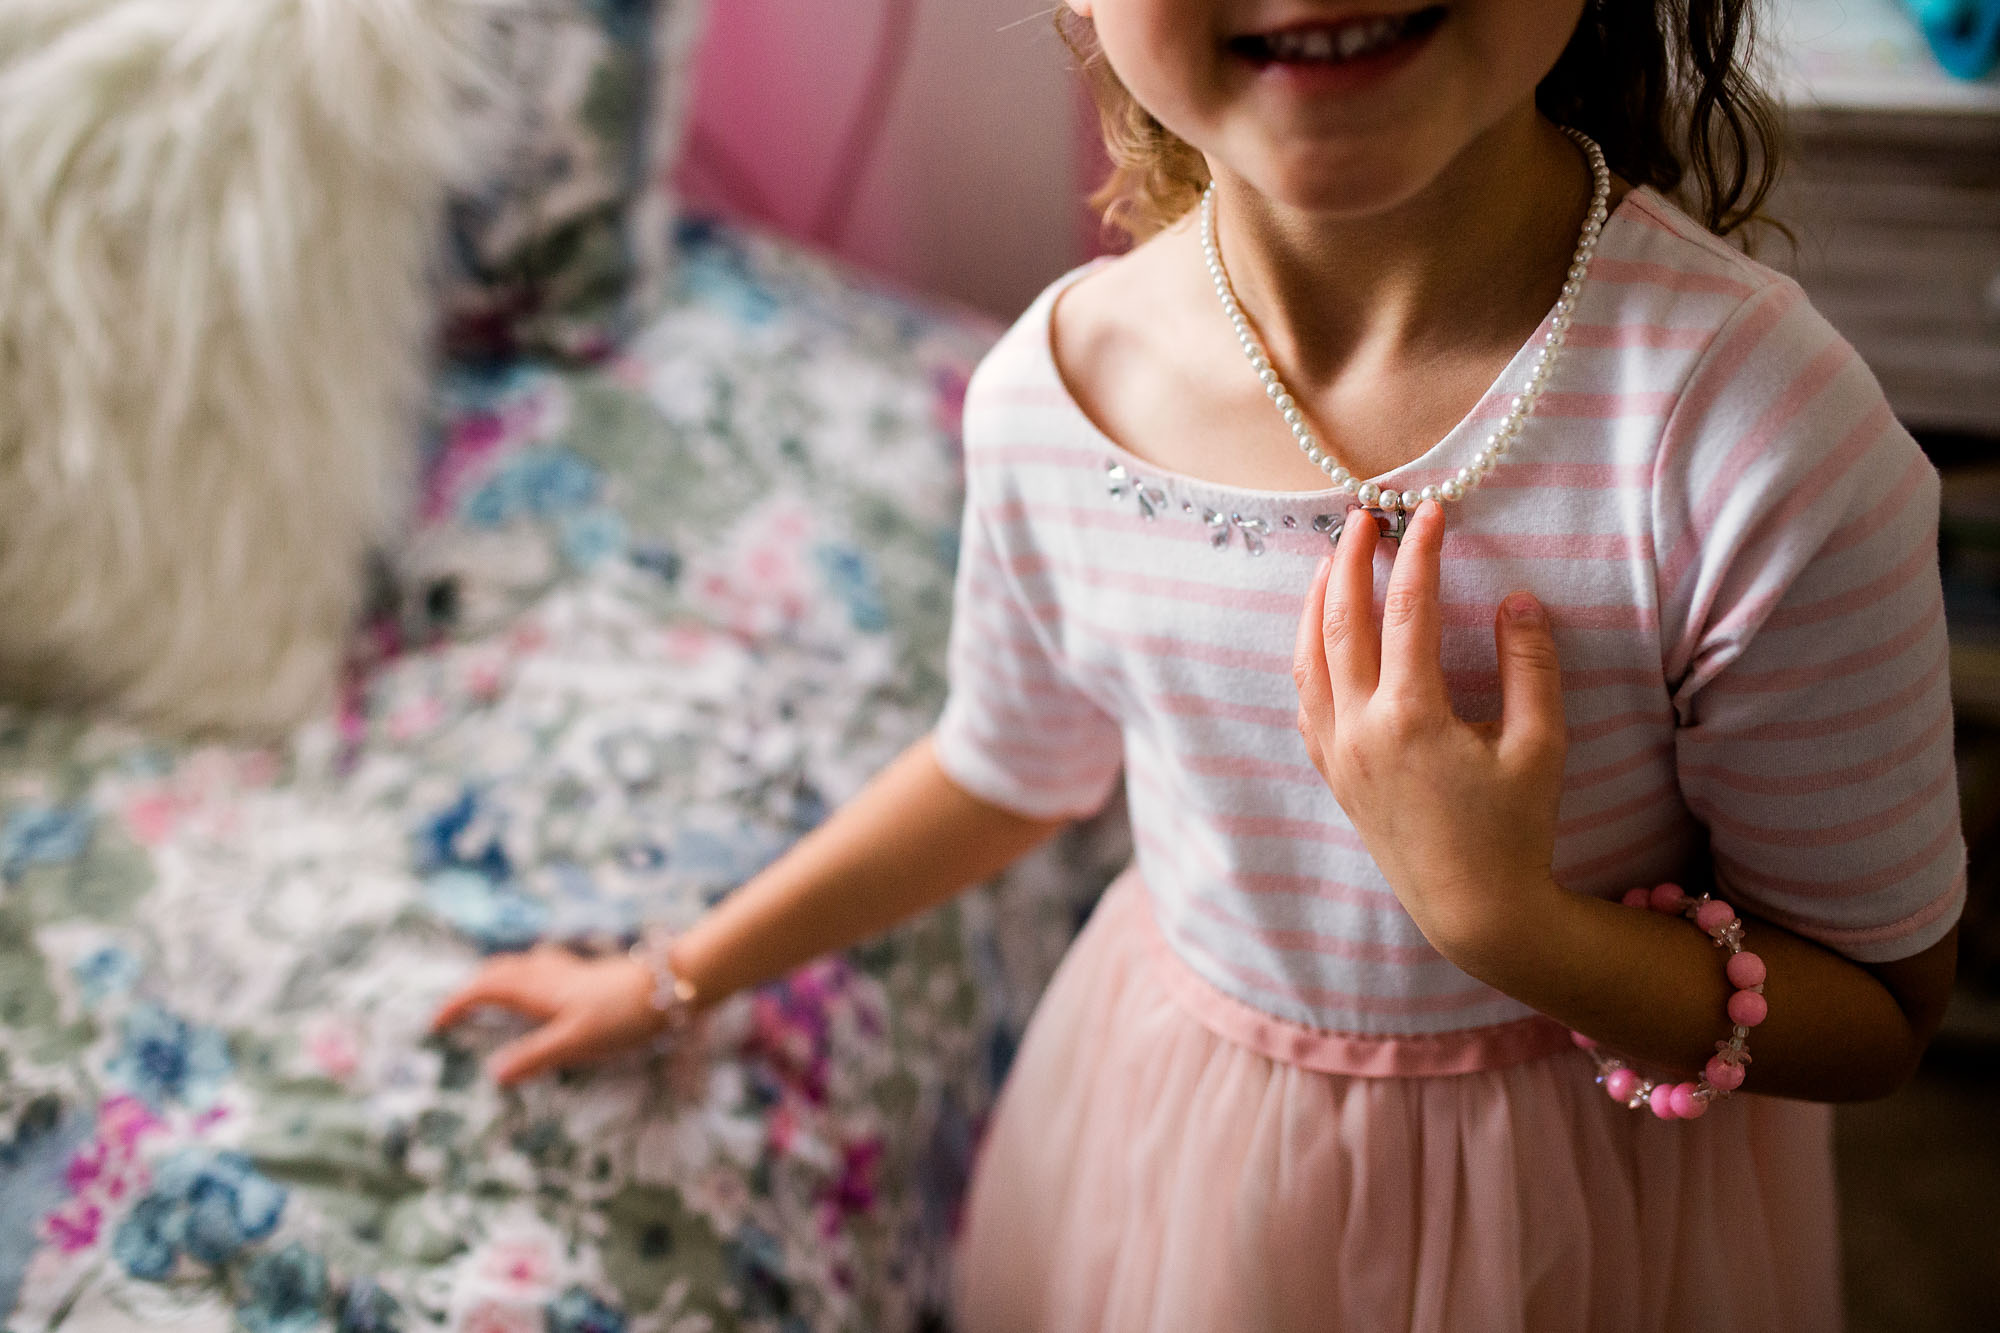 A young girl touches her necklace and smiles during an in-home lifestyle photo session in Roseville, California.